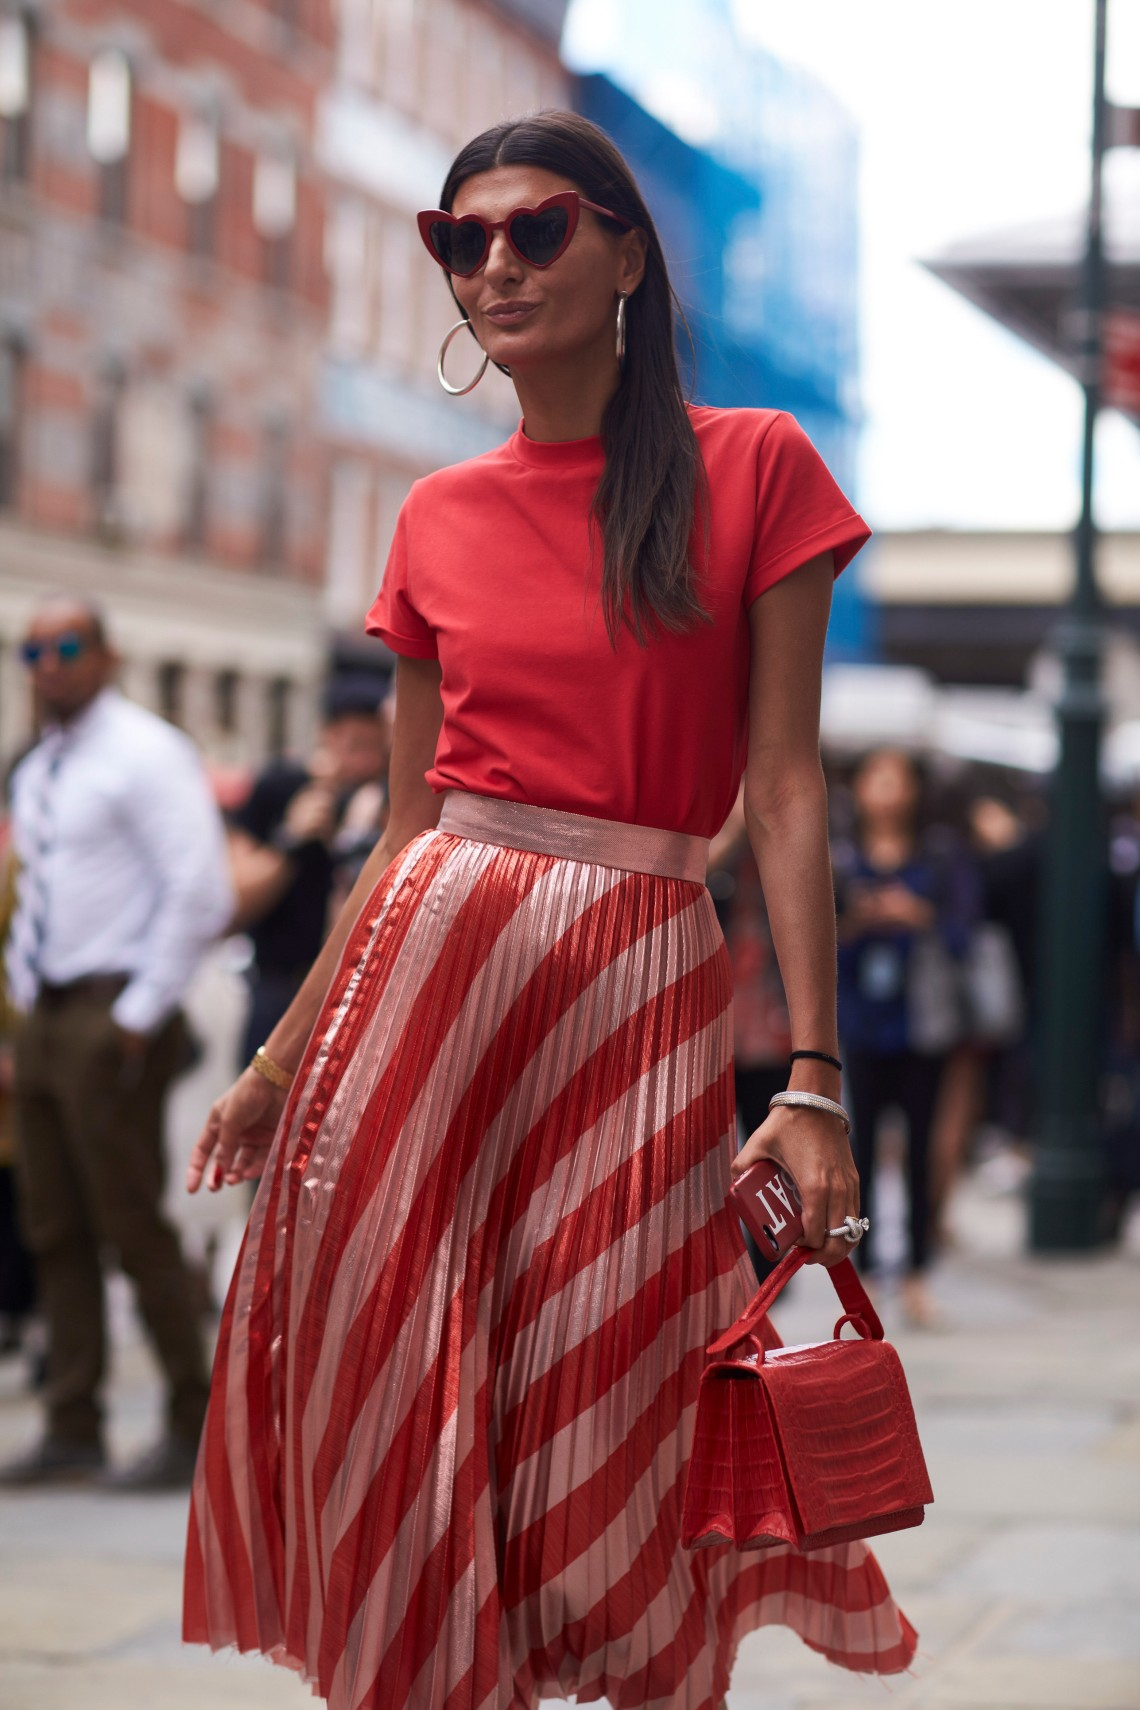 fashion_week_streets_0917_nyfws_day3_bis_imx_131_hr